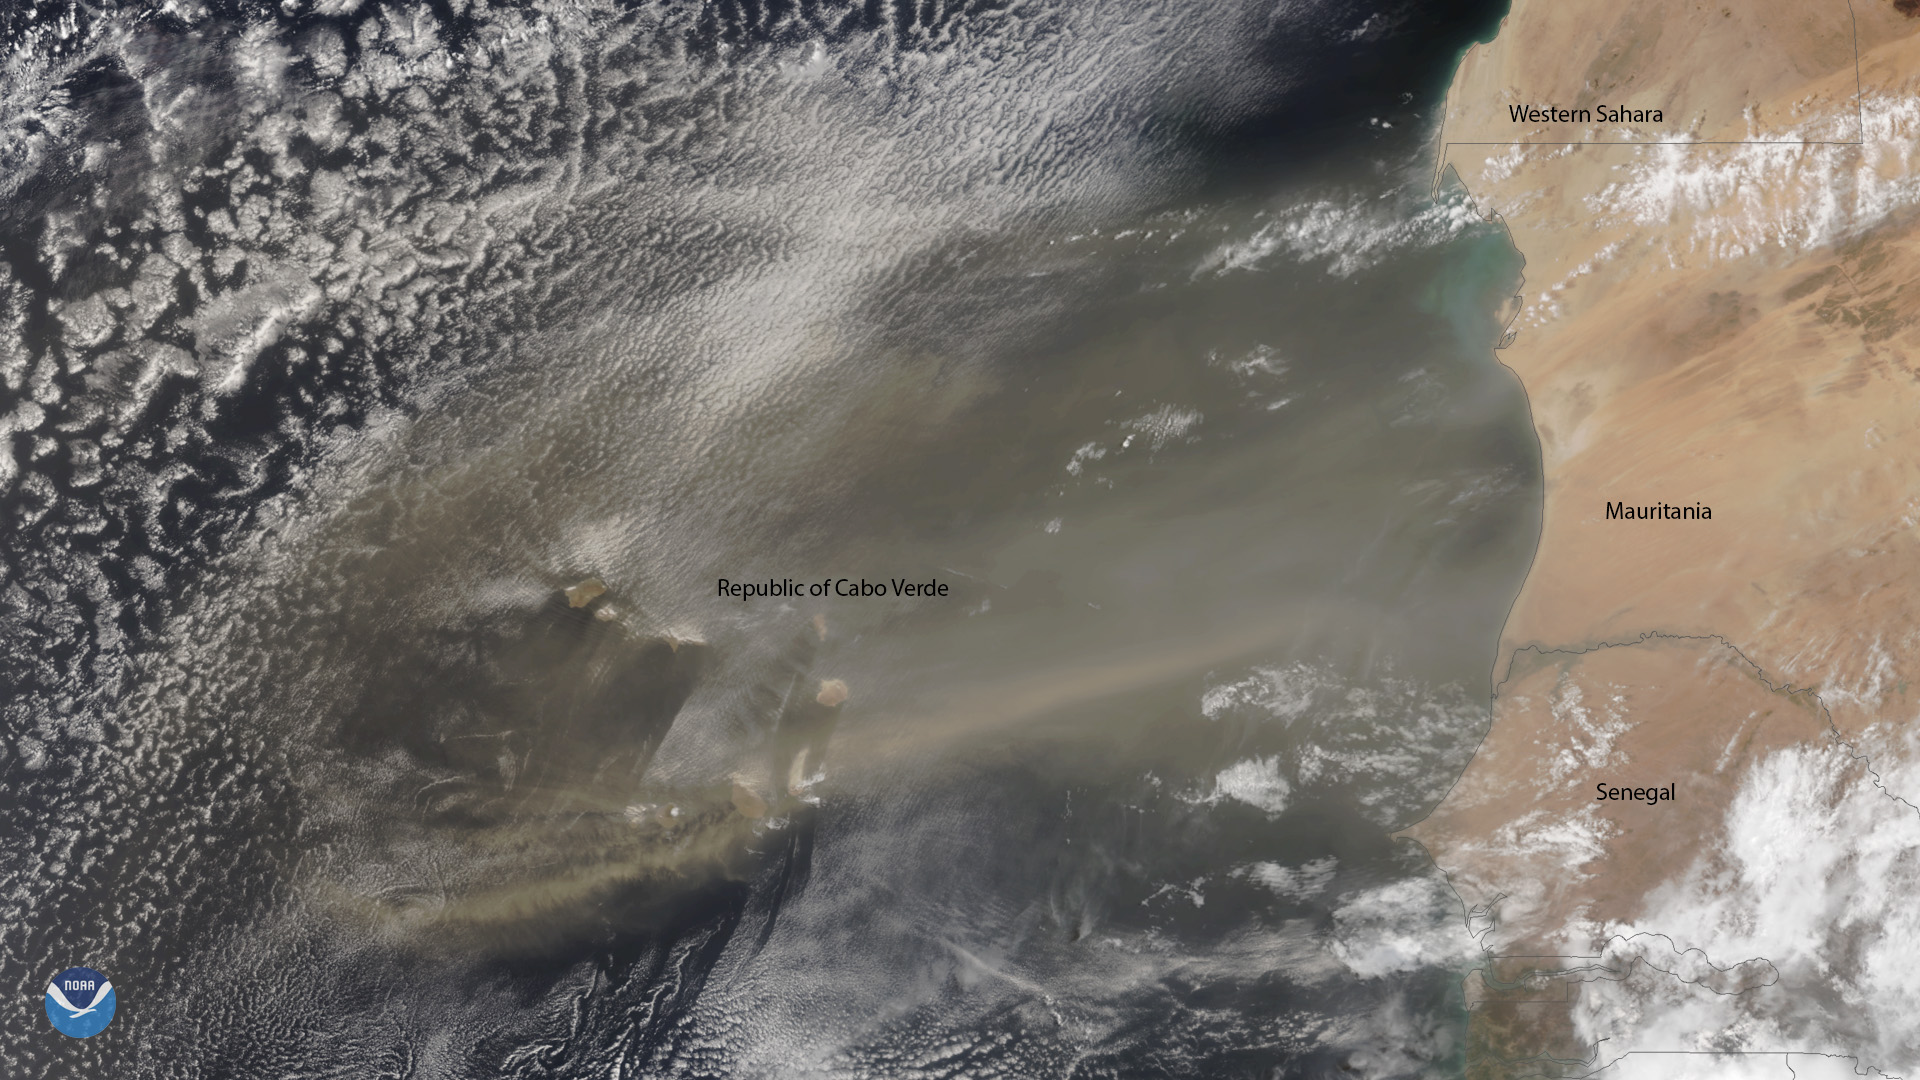 Plume of Saharan Dust Envelops the Republic of Cabo Verde